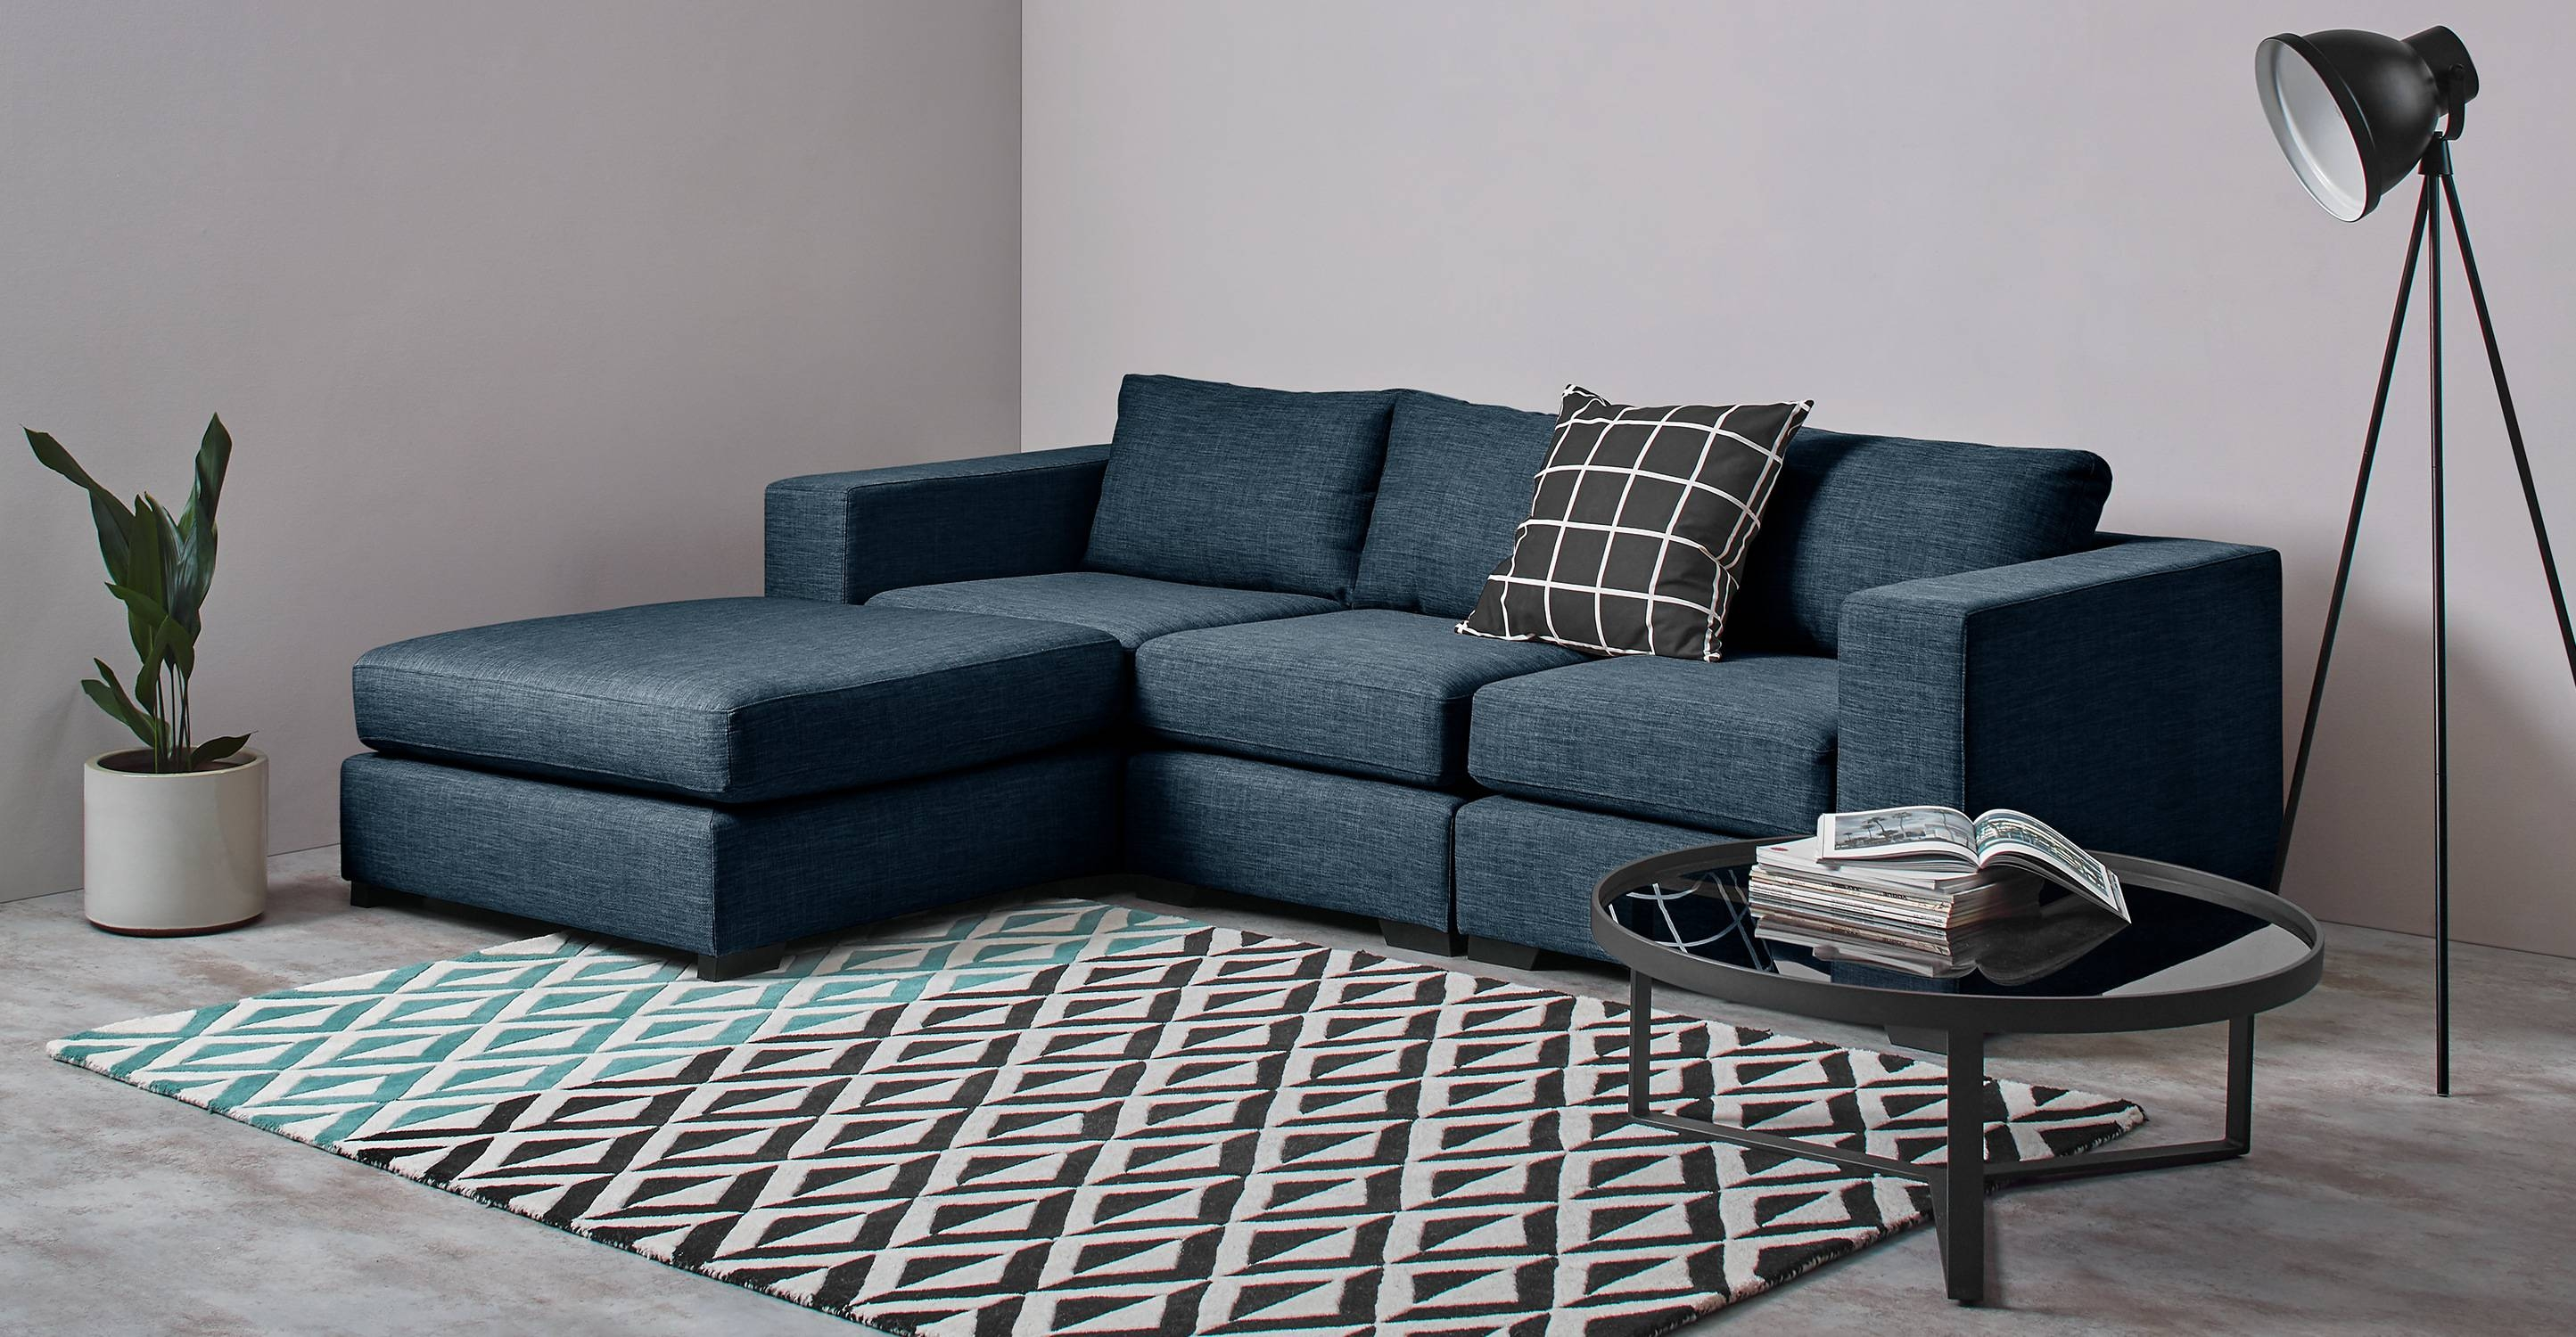 Mortimer 4 Seat Modular Corner Sofa, Harbour Blue | Made in Modular Corner Sofas (Image 26 of 30)